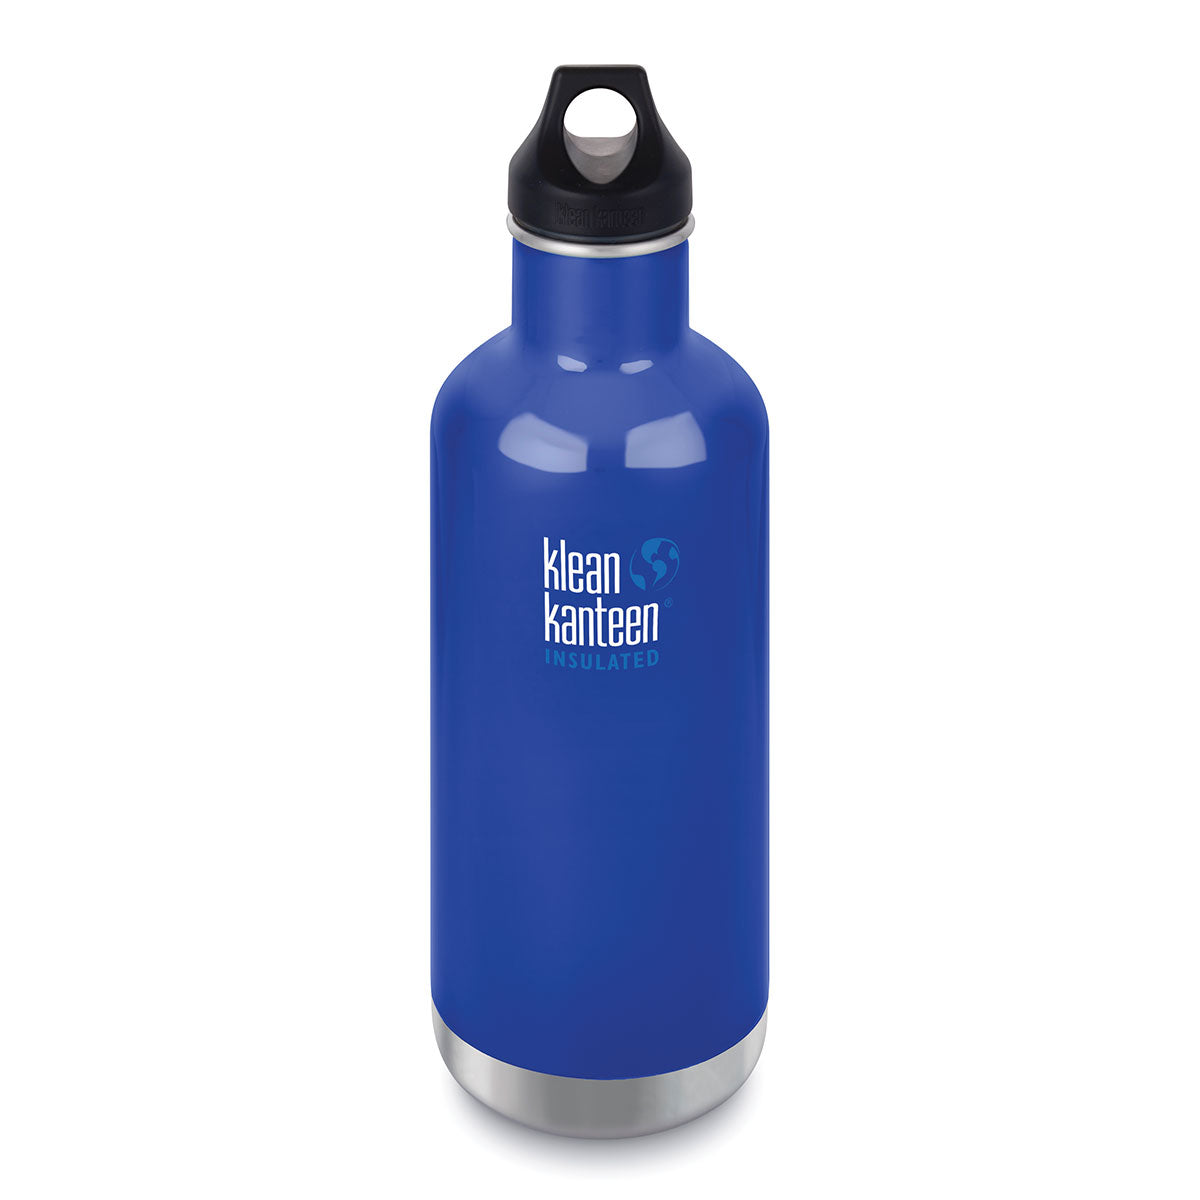 Klean Kanteen Klean Kanteen Insulated Classic 32oz (946ml) - BNR Industrial